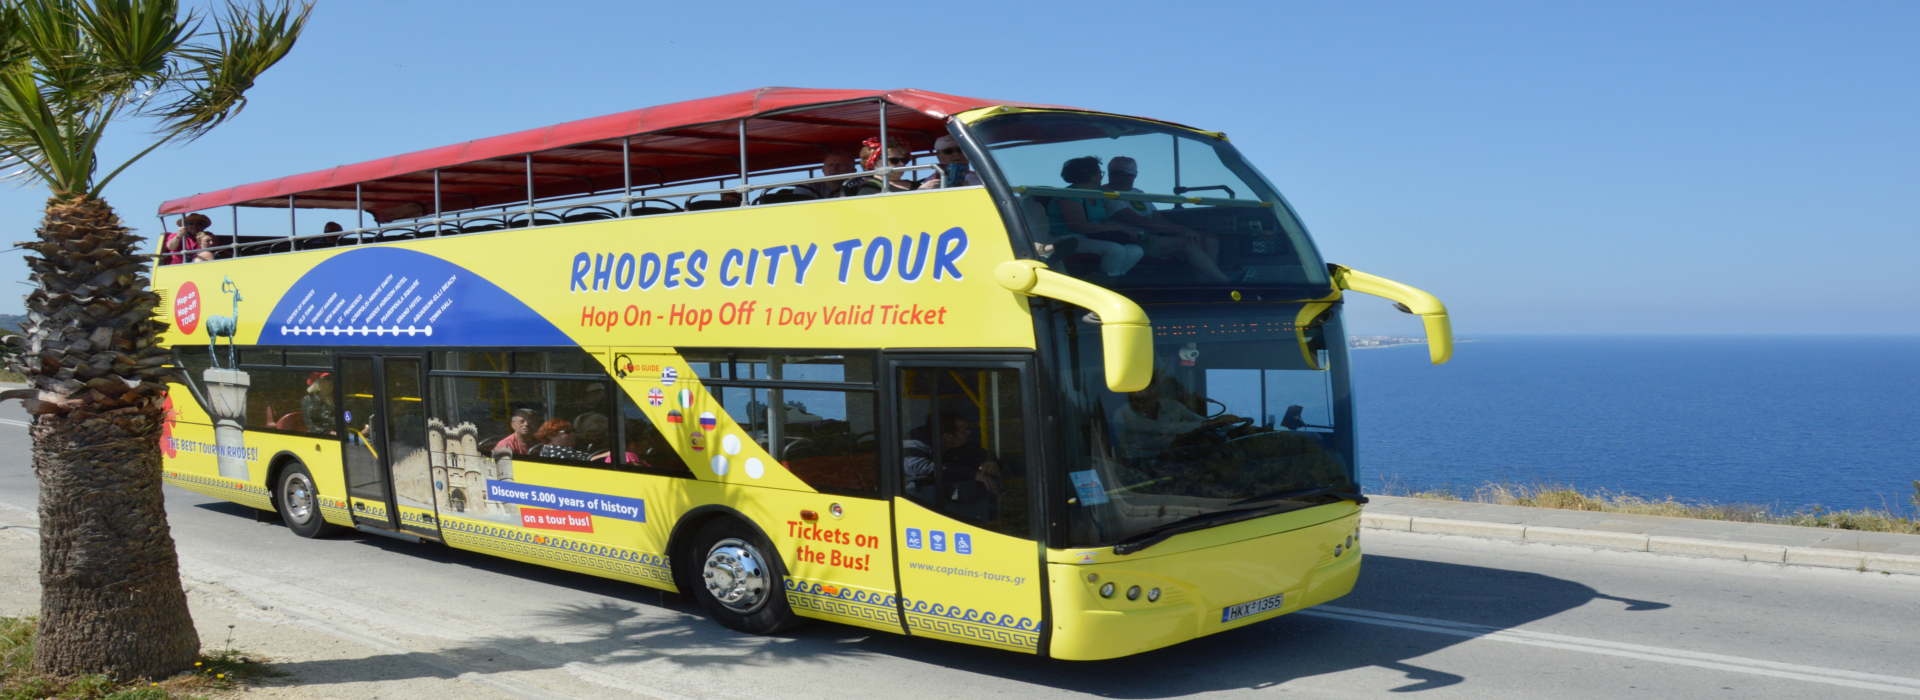 Rhodes tour met open bus | Captains Tours